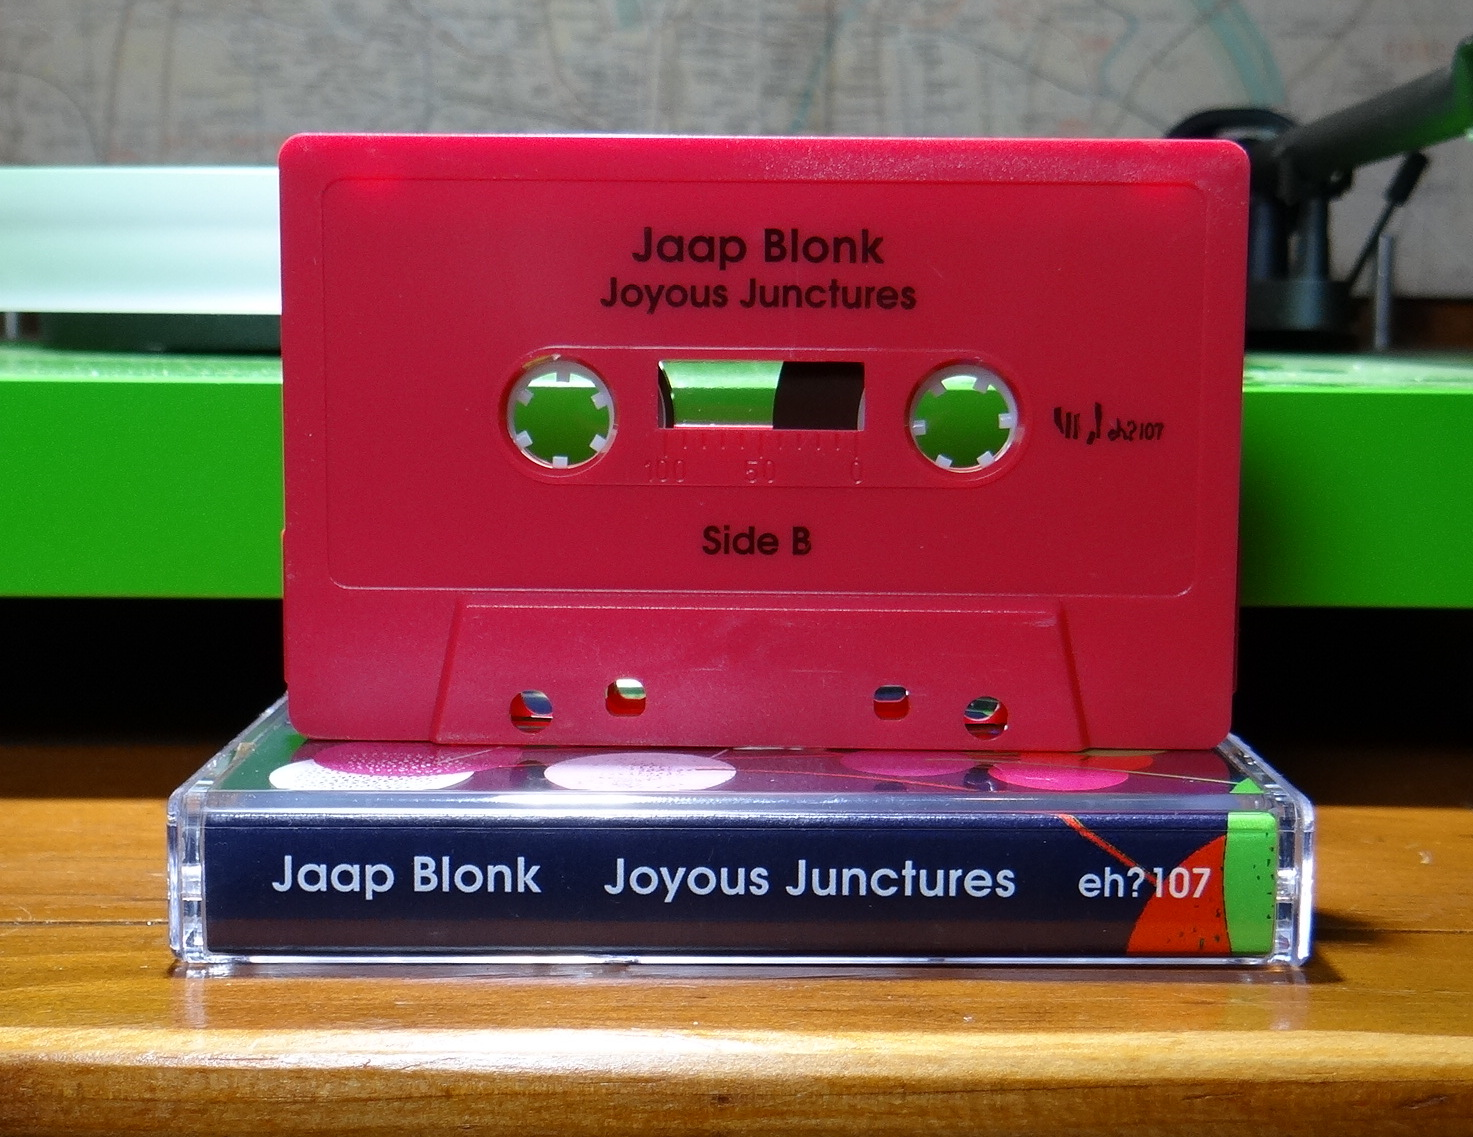 lost in a sea of sound: Jaap Blonk - Joyous Junctures